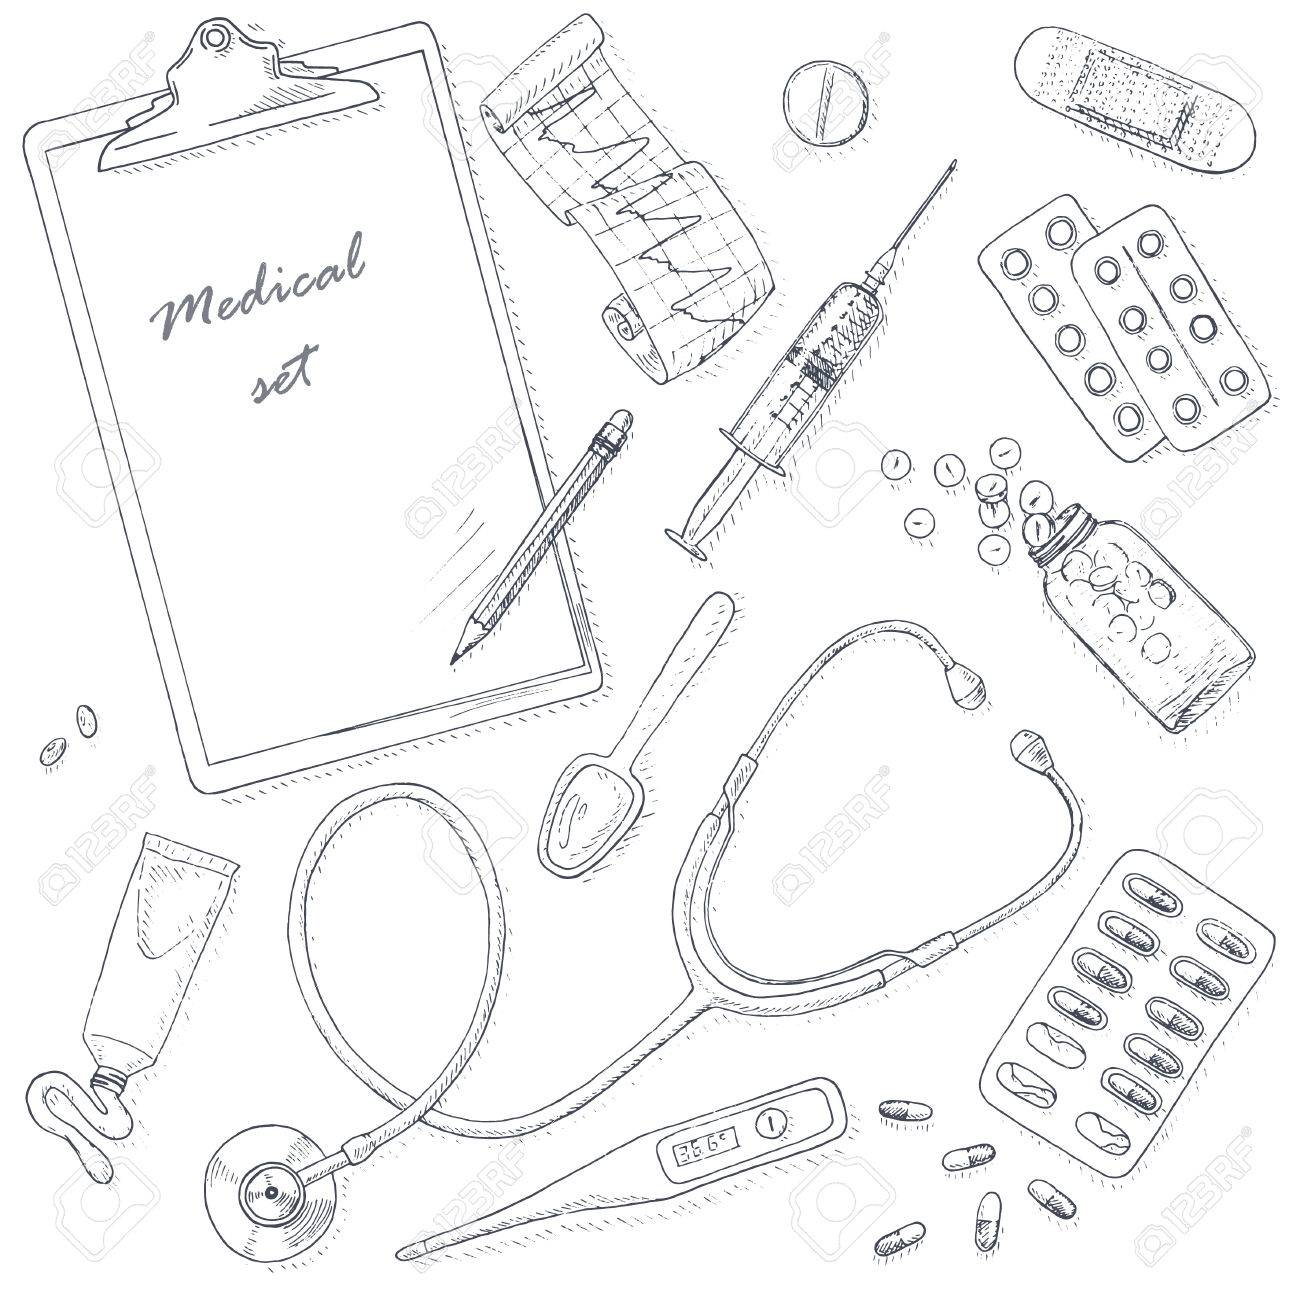 1300x1300 Medical And Health Set. Medical Equipment Kit. Healthcare Vector